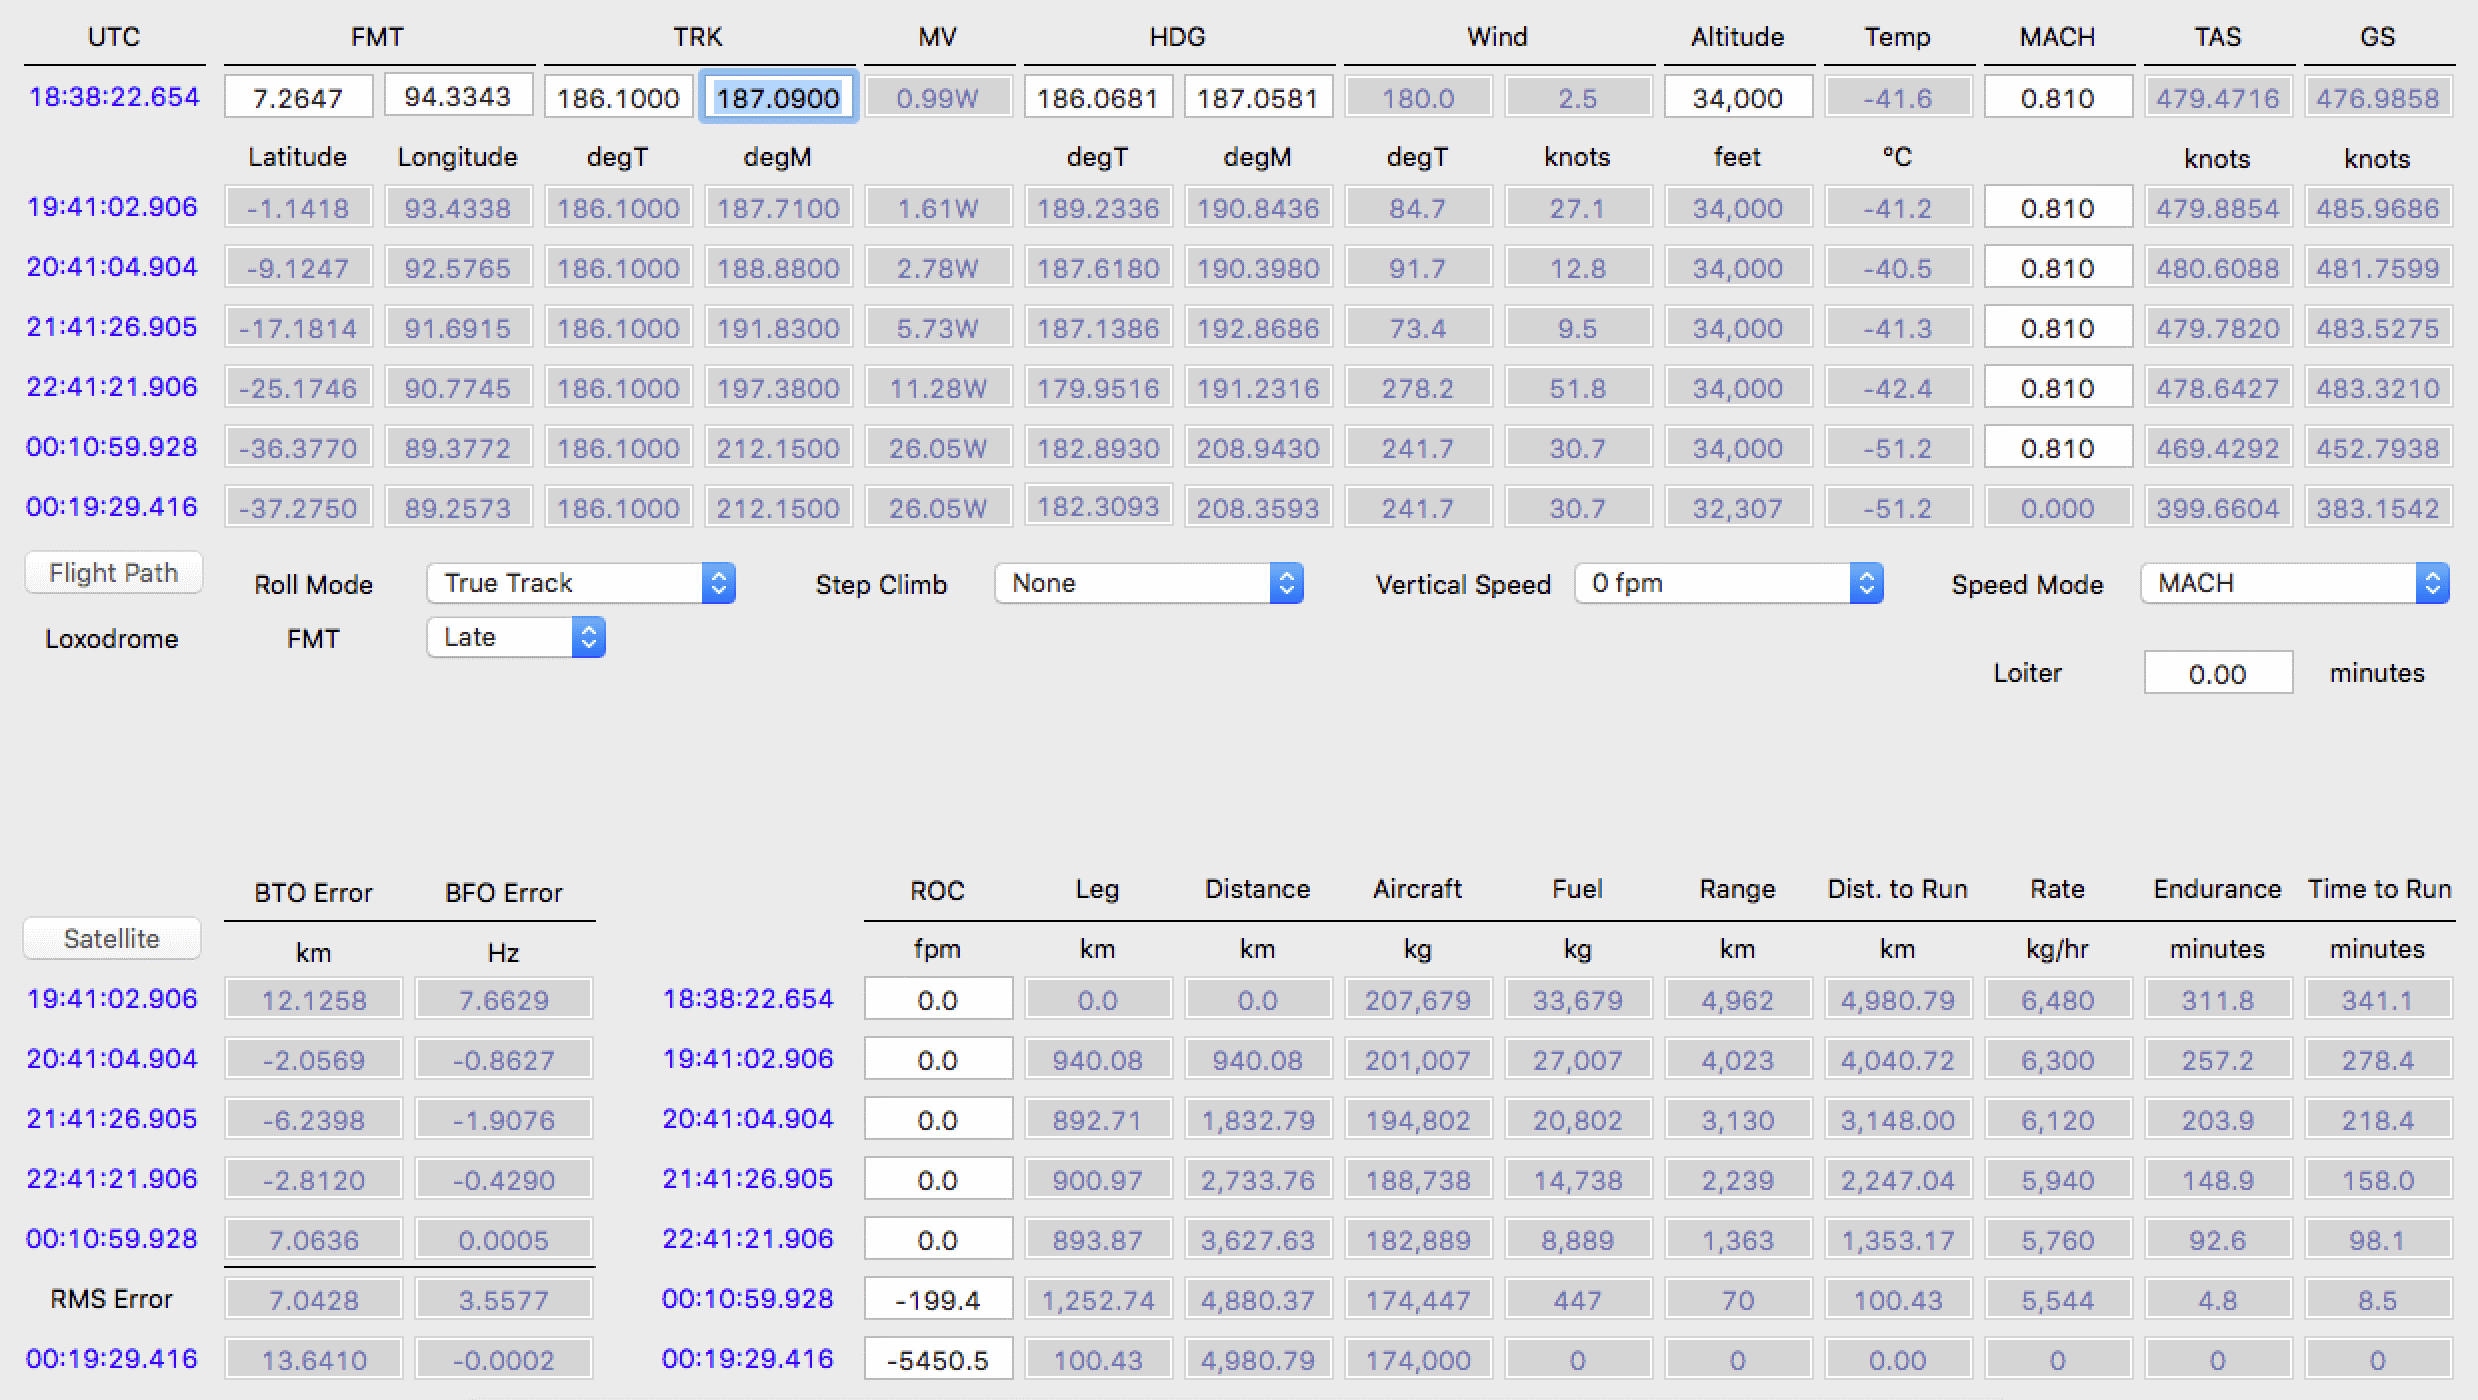 OuEstMH370_table_3